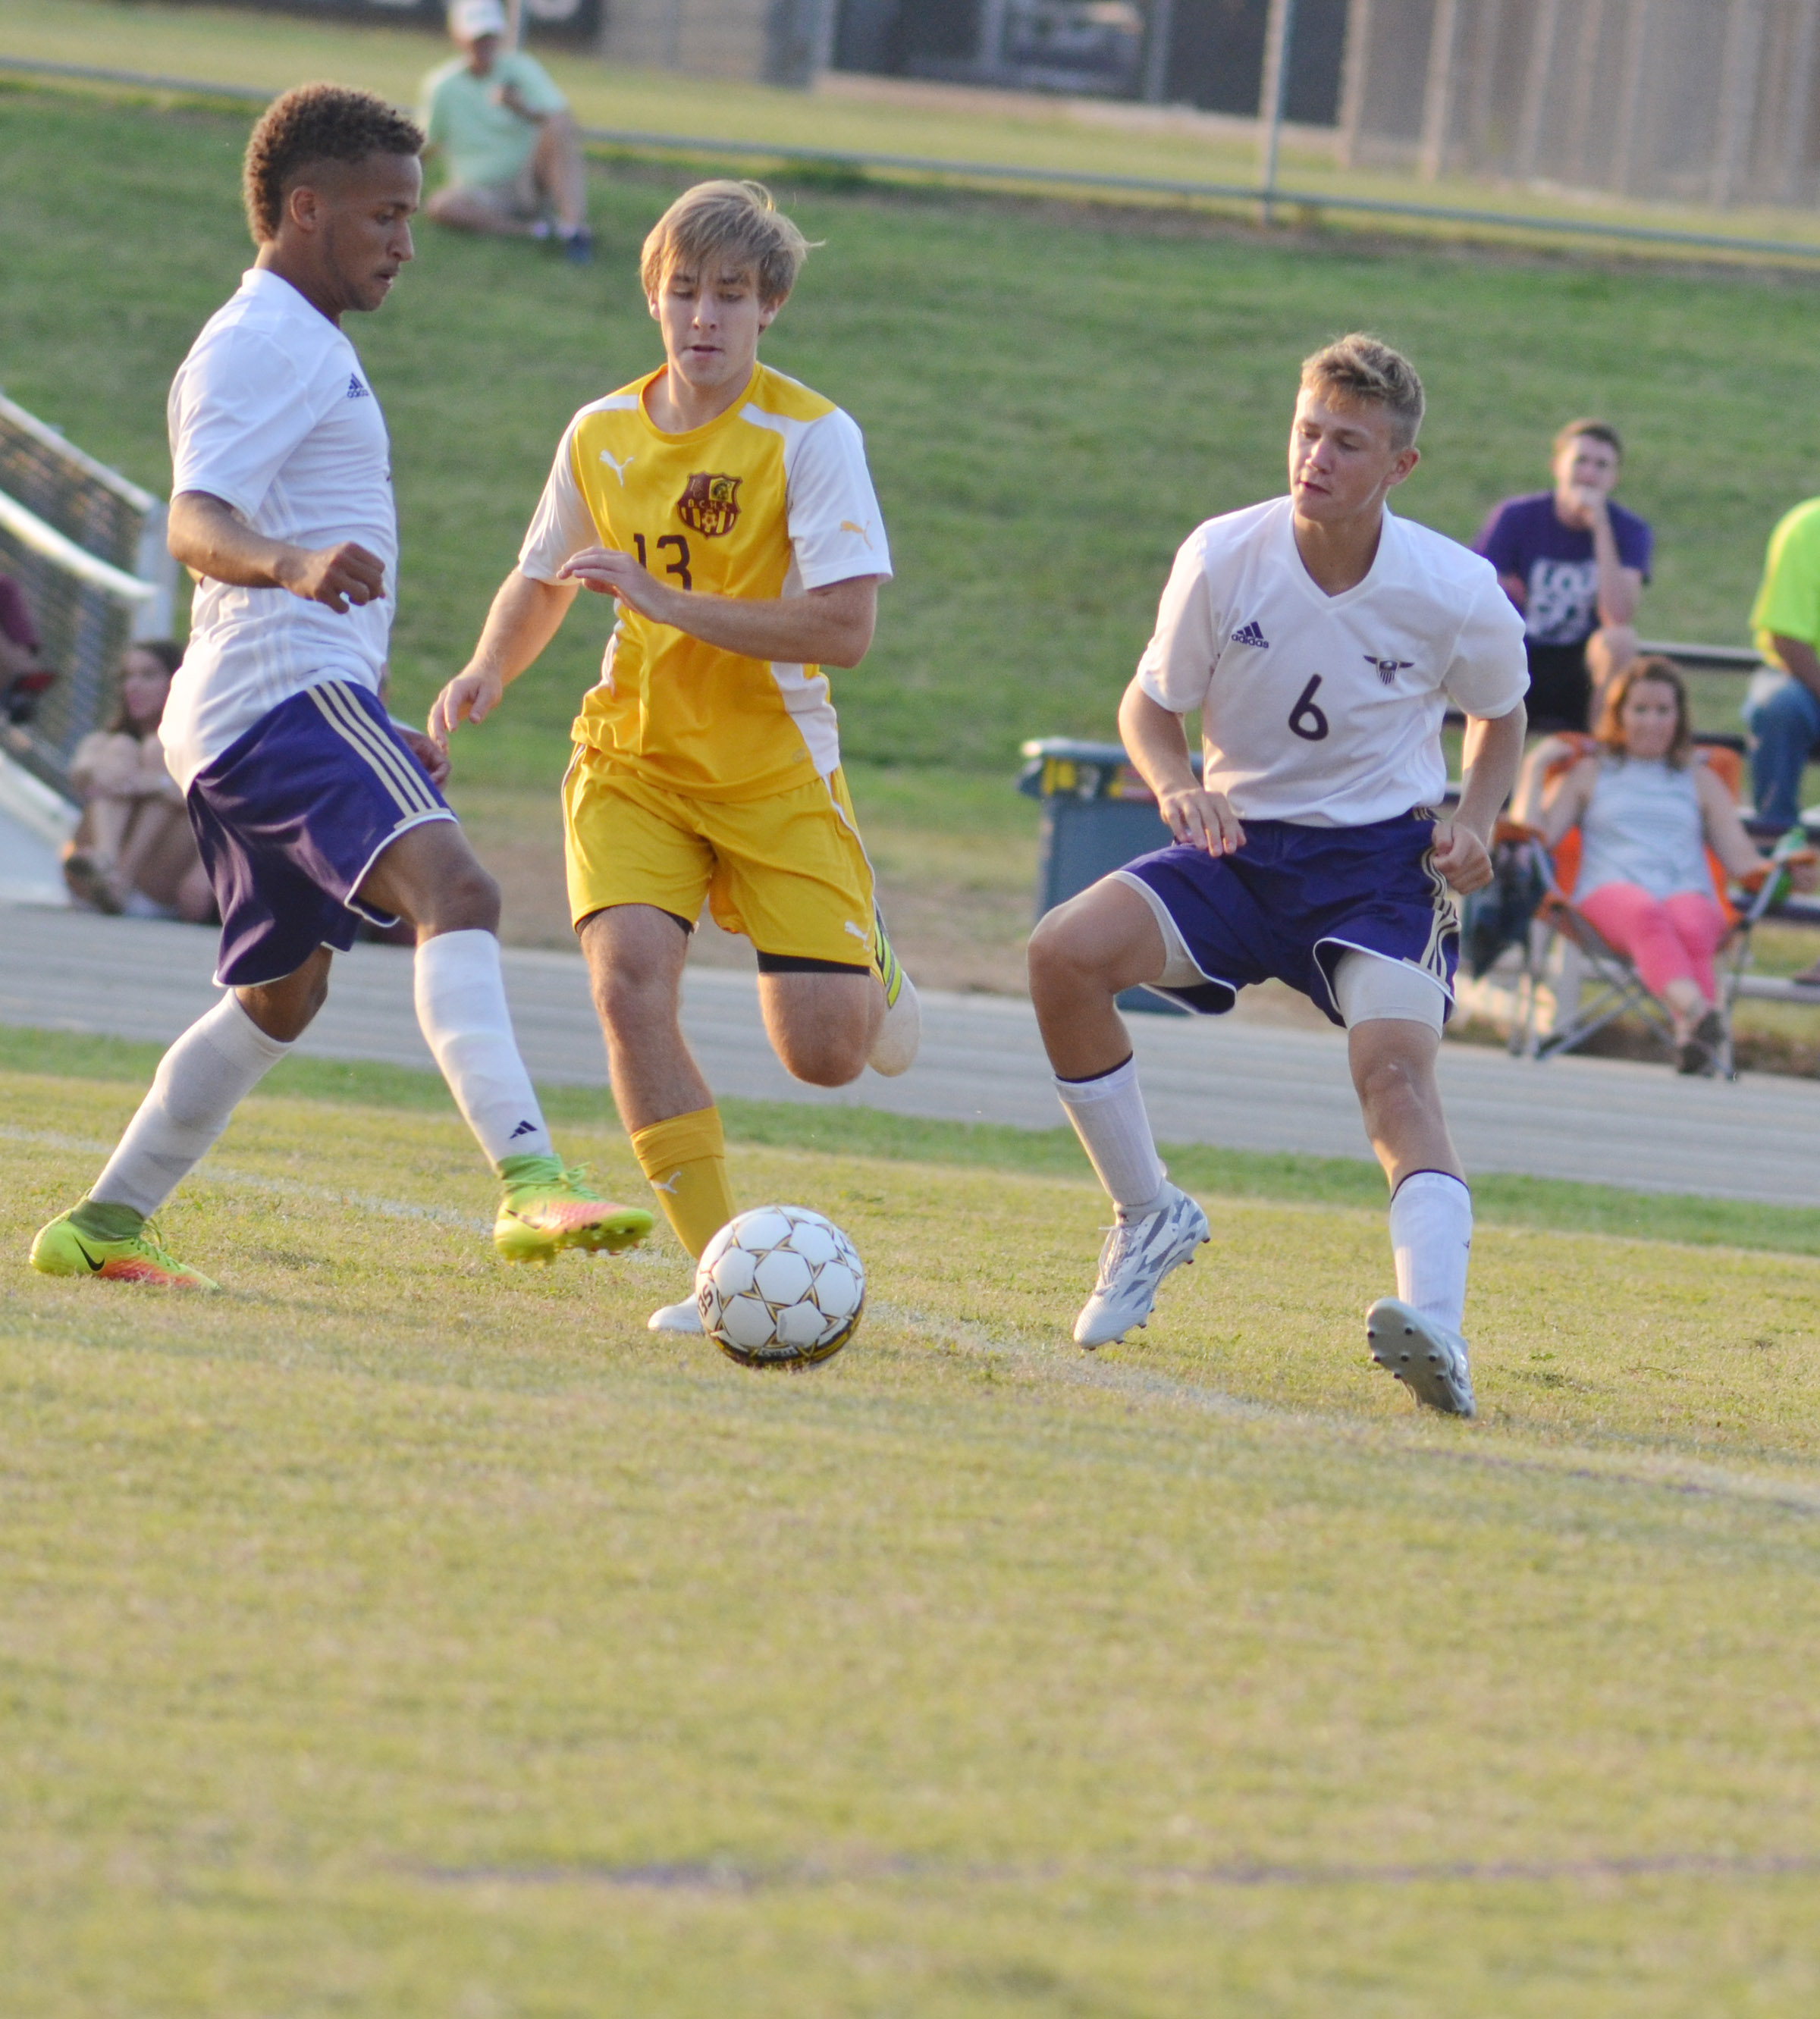 CHS senior Ethan Lay, at left, and freshman Blase Wheatley protect the ball.